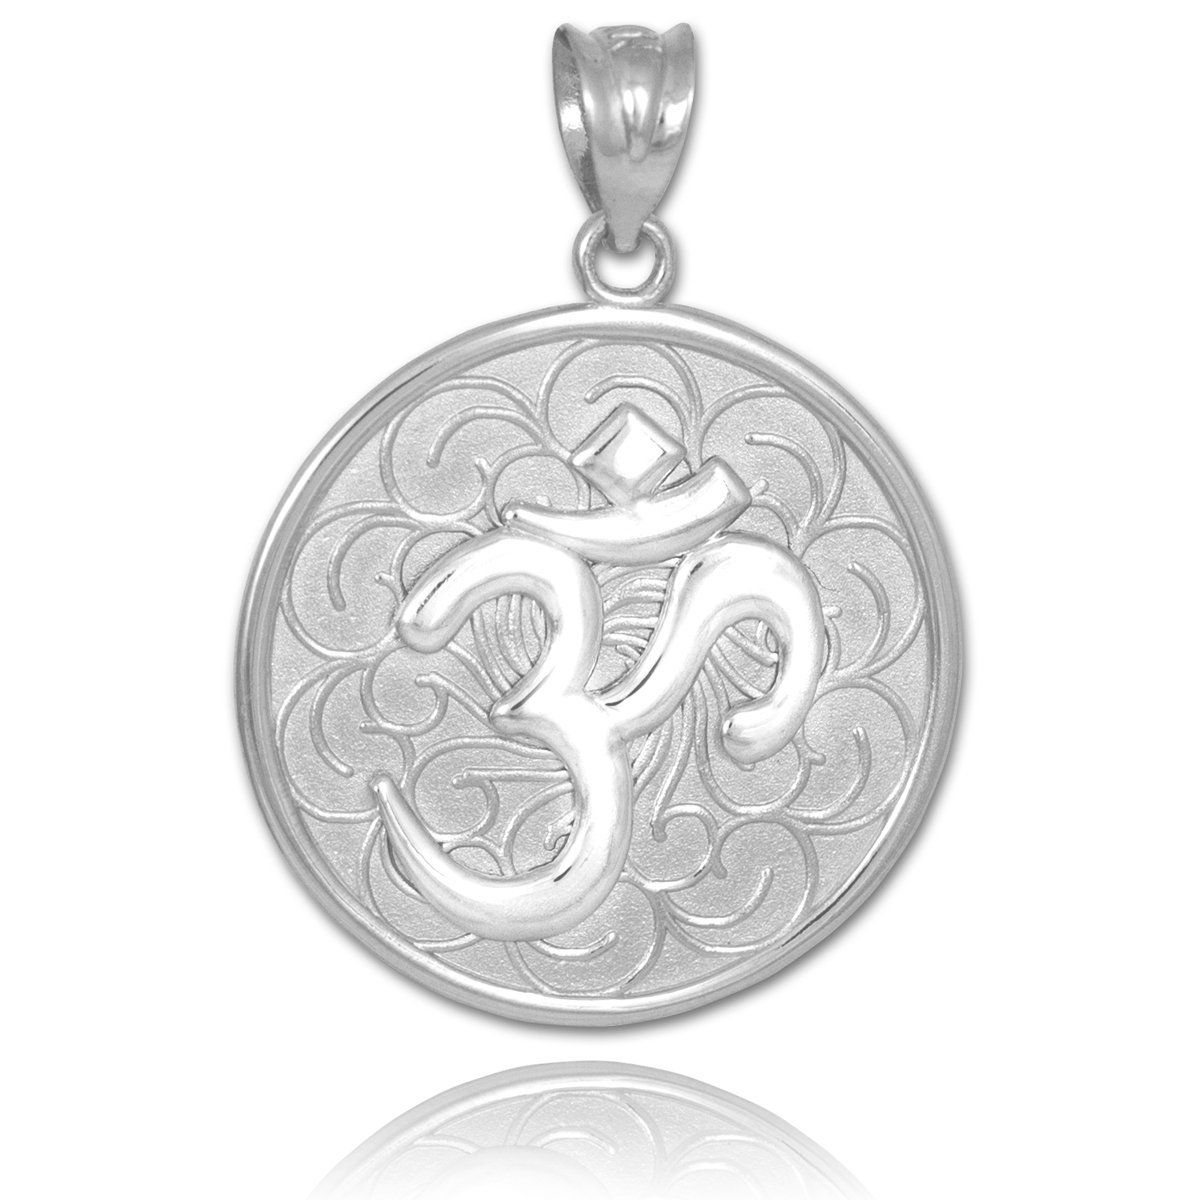 Aum 14k White Gold Om Medallion Pendant